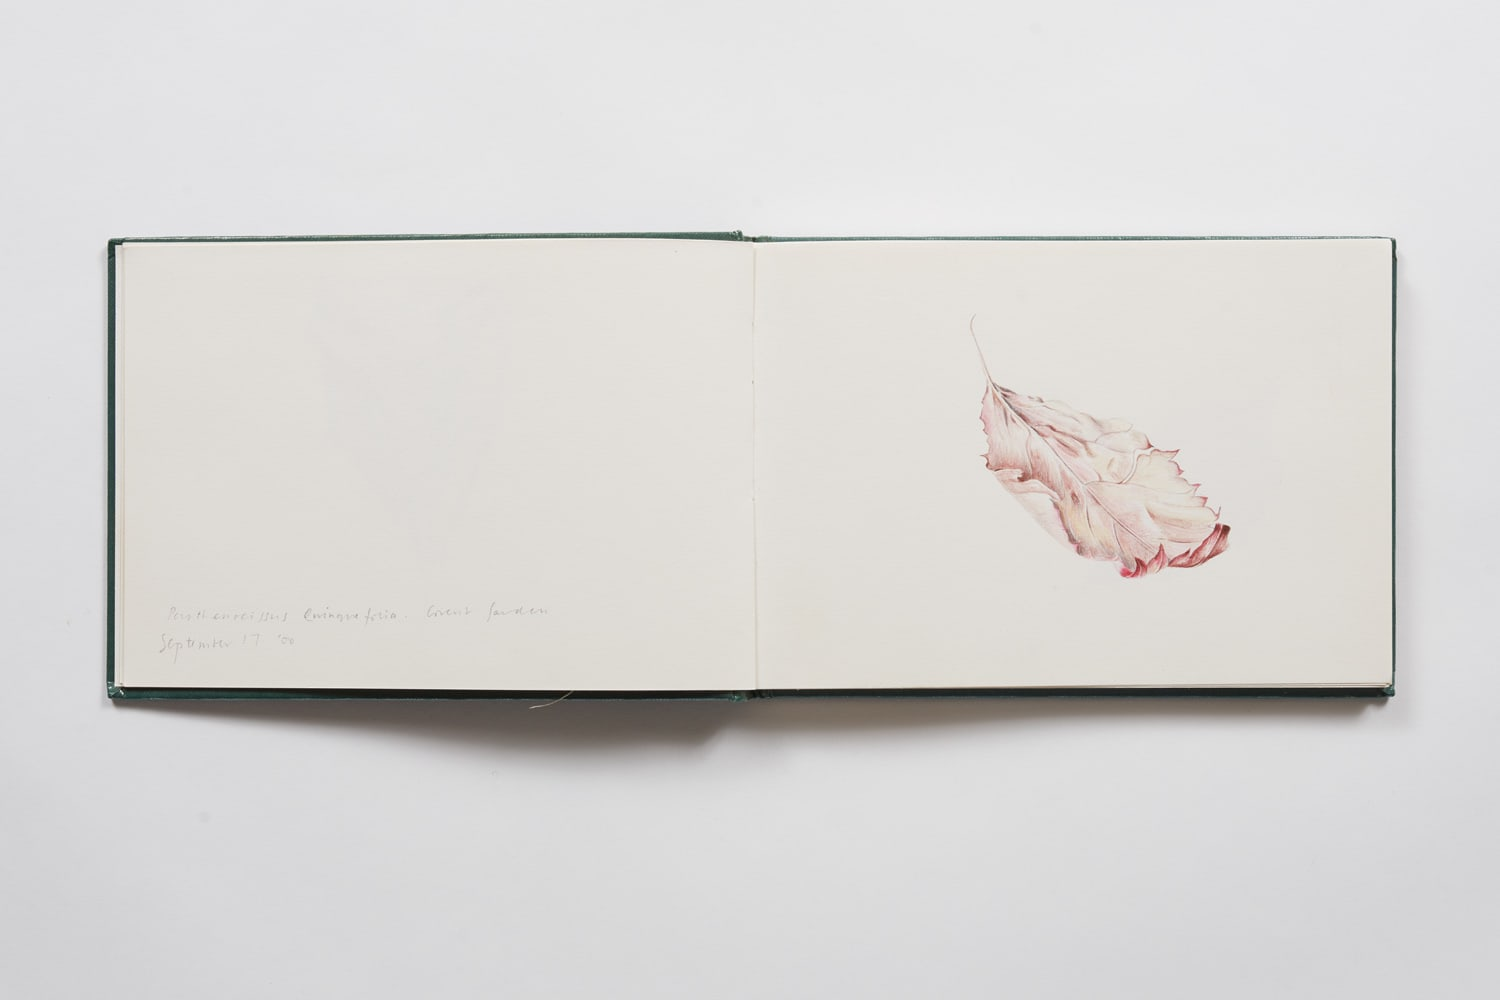 Rebecca John, A Book of Leaves I (incomplete). September 2000 – January 2007, 2000-2007